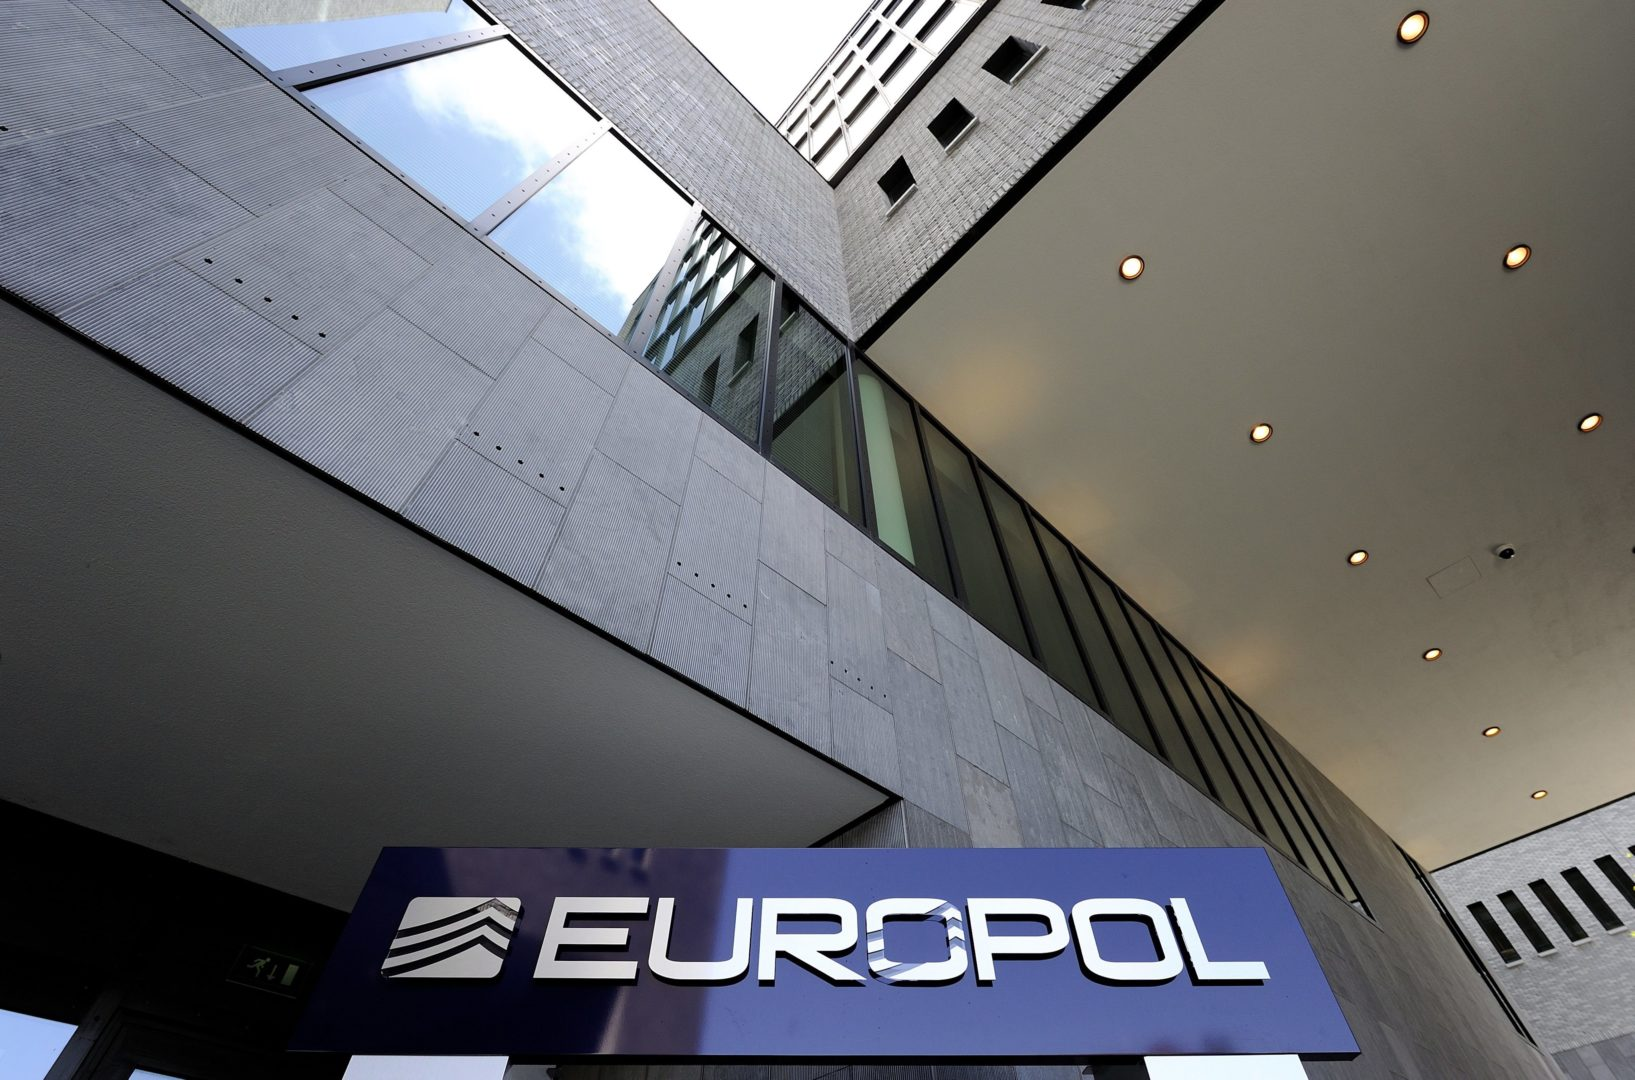 epa02804675 An exterior view of the new Europol headquarters, the alliance of the European Union police and a multinational research organization, in The Hague, The Netherlands 01 July 2011. The headquarters were officially opened 01 July.  EPA/Lex van Lieshout